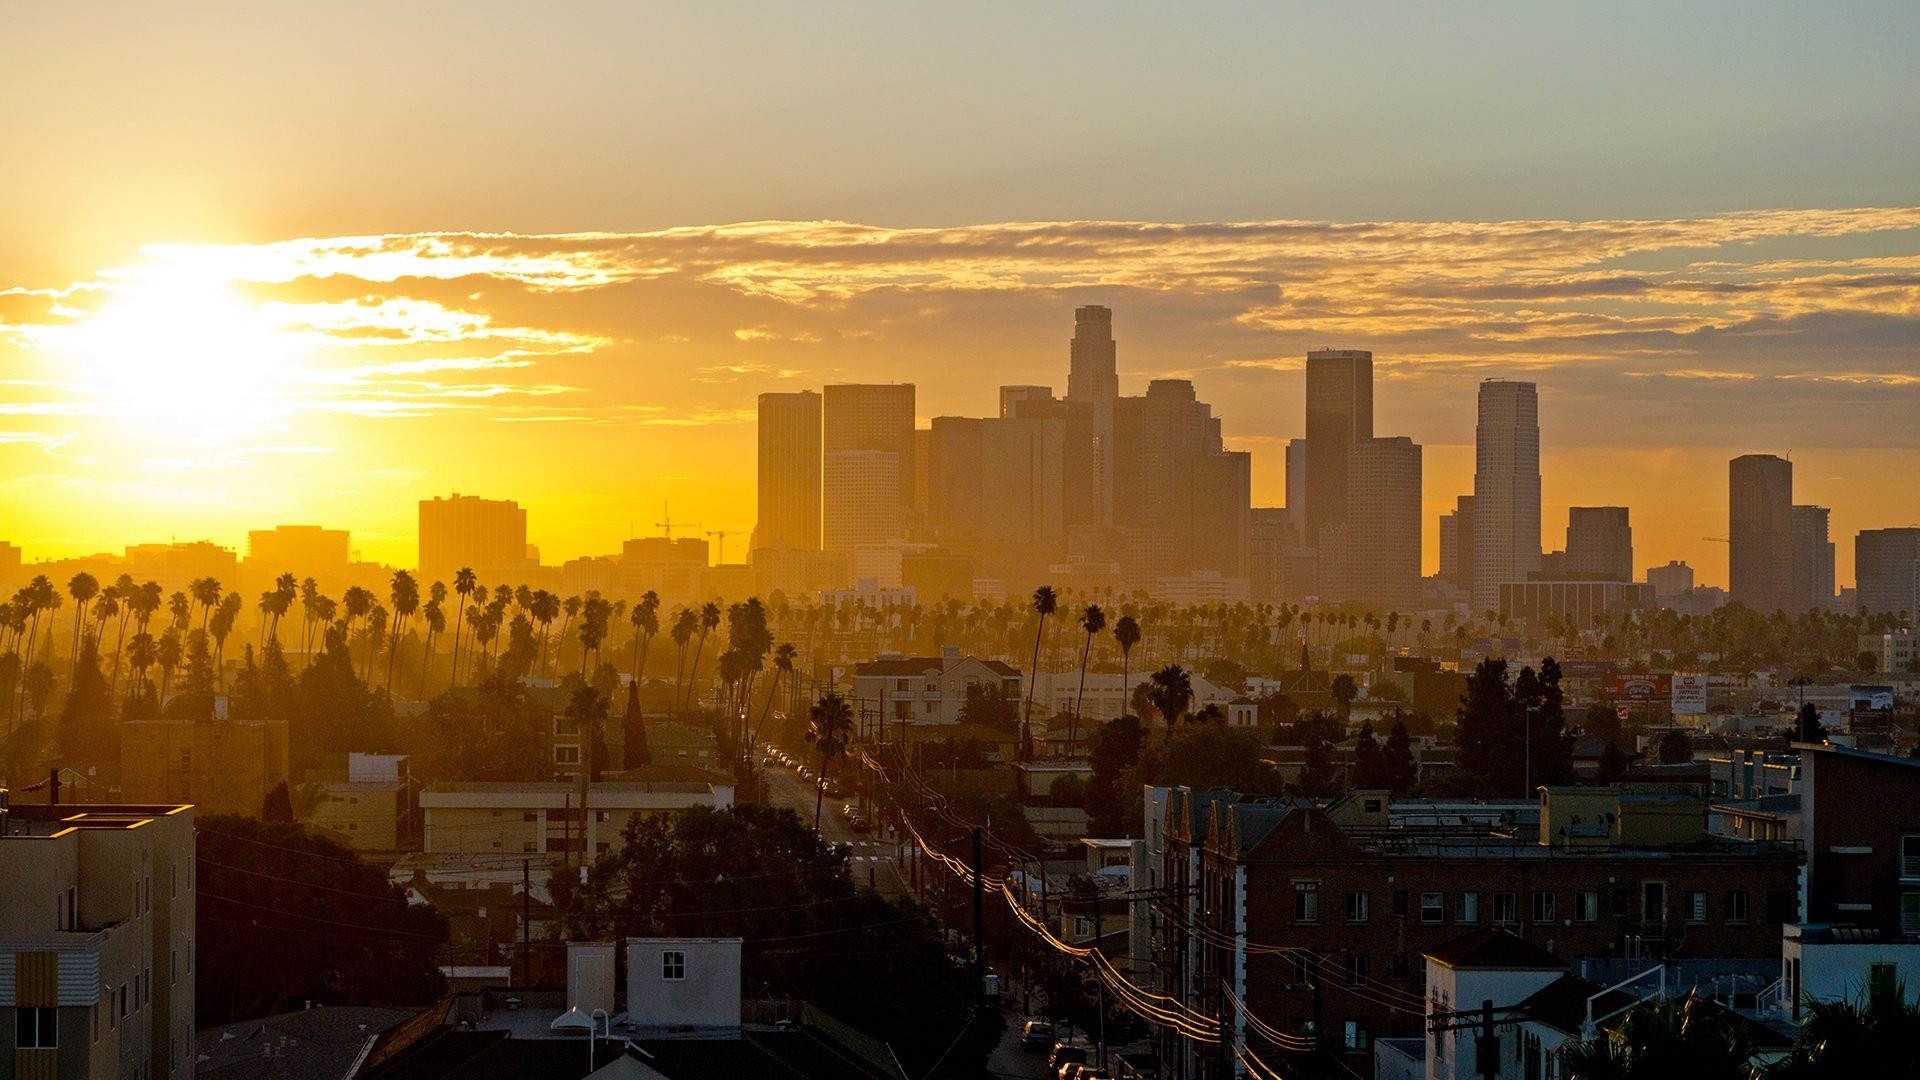 Los Angeles Wallpaper ·① Download Free Full HD Backgrounds